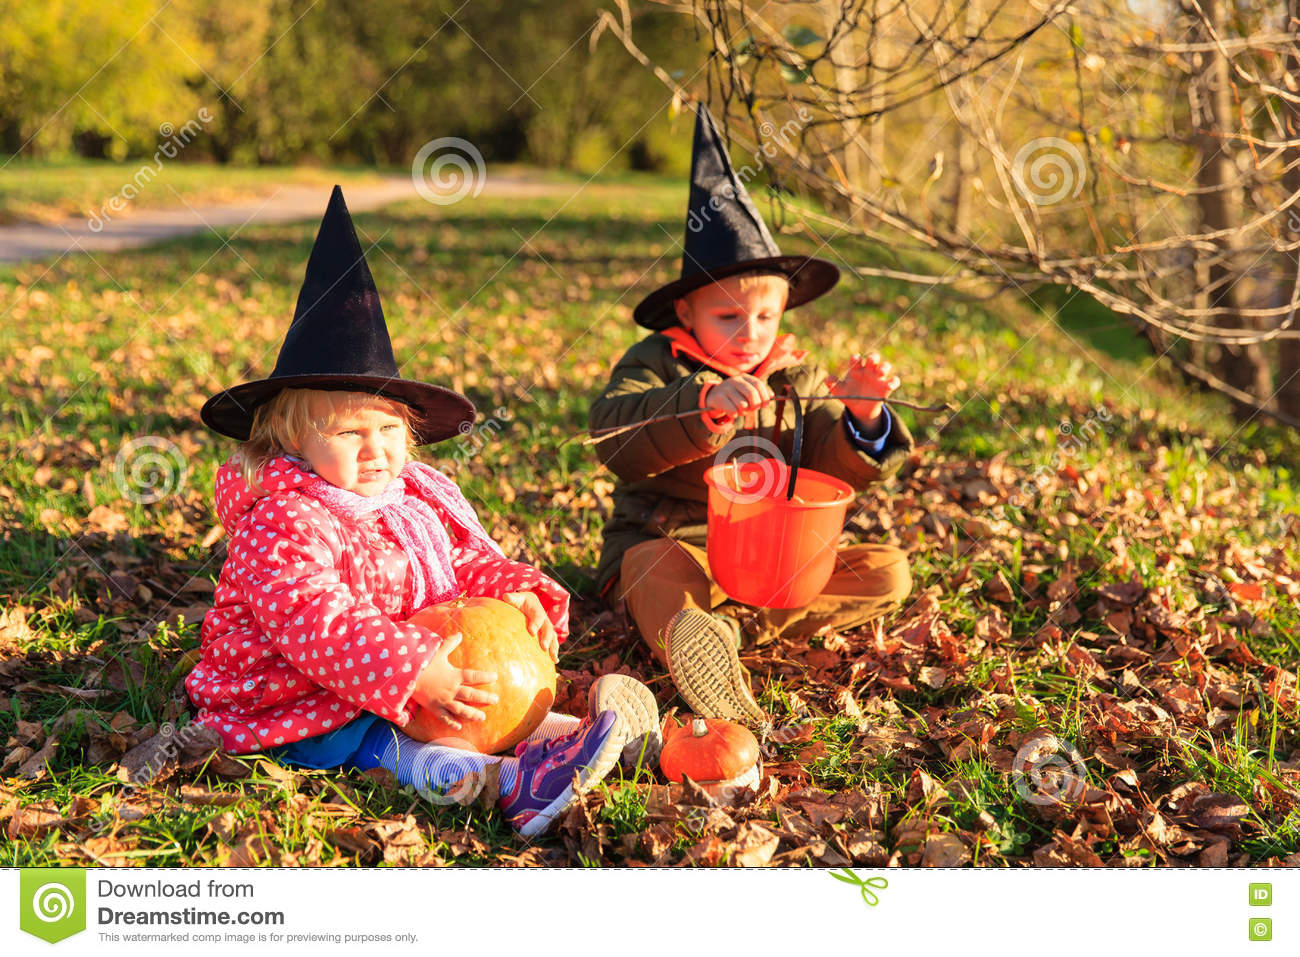 kids in halloween costume play at autumn park